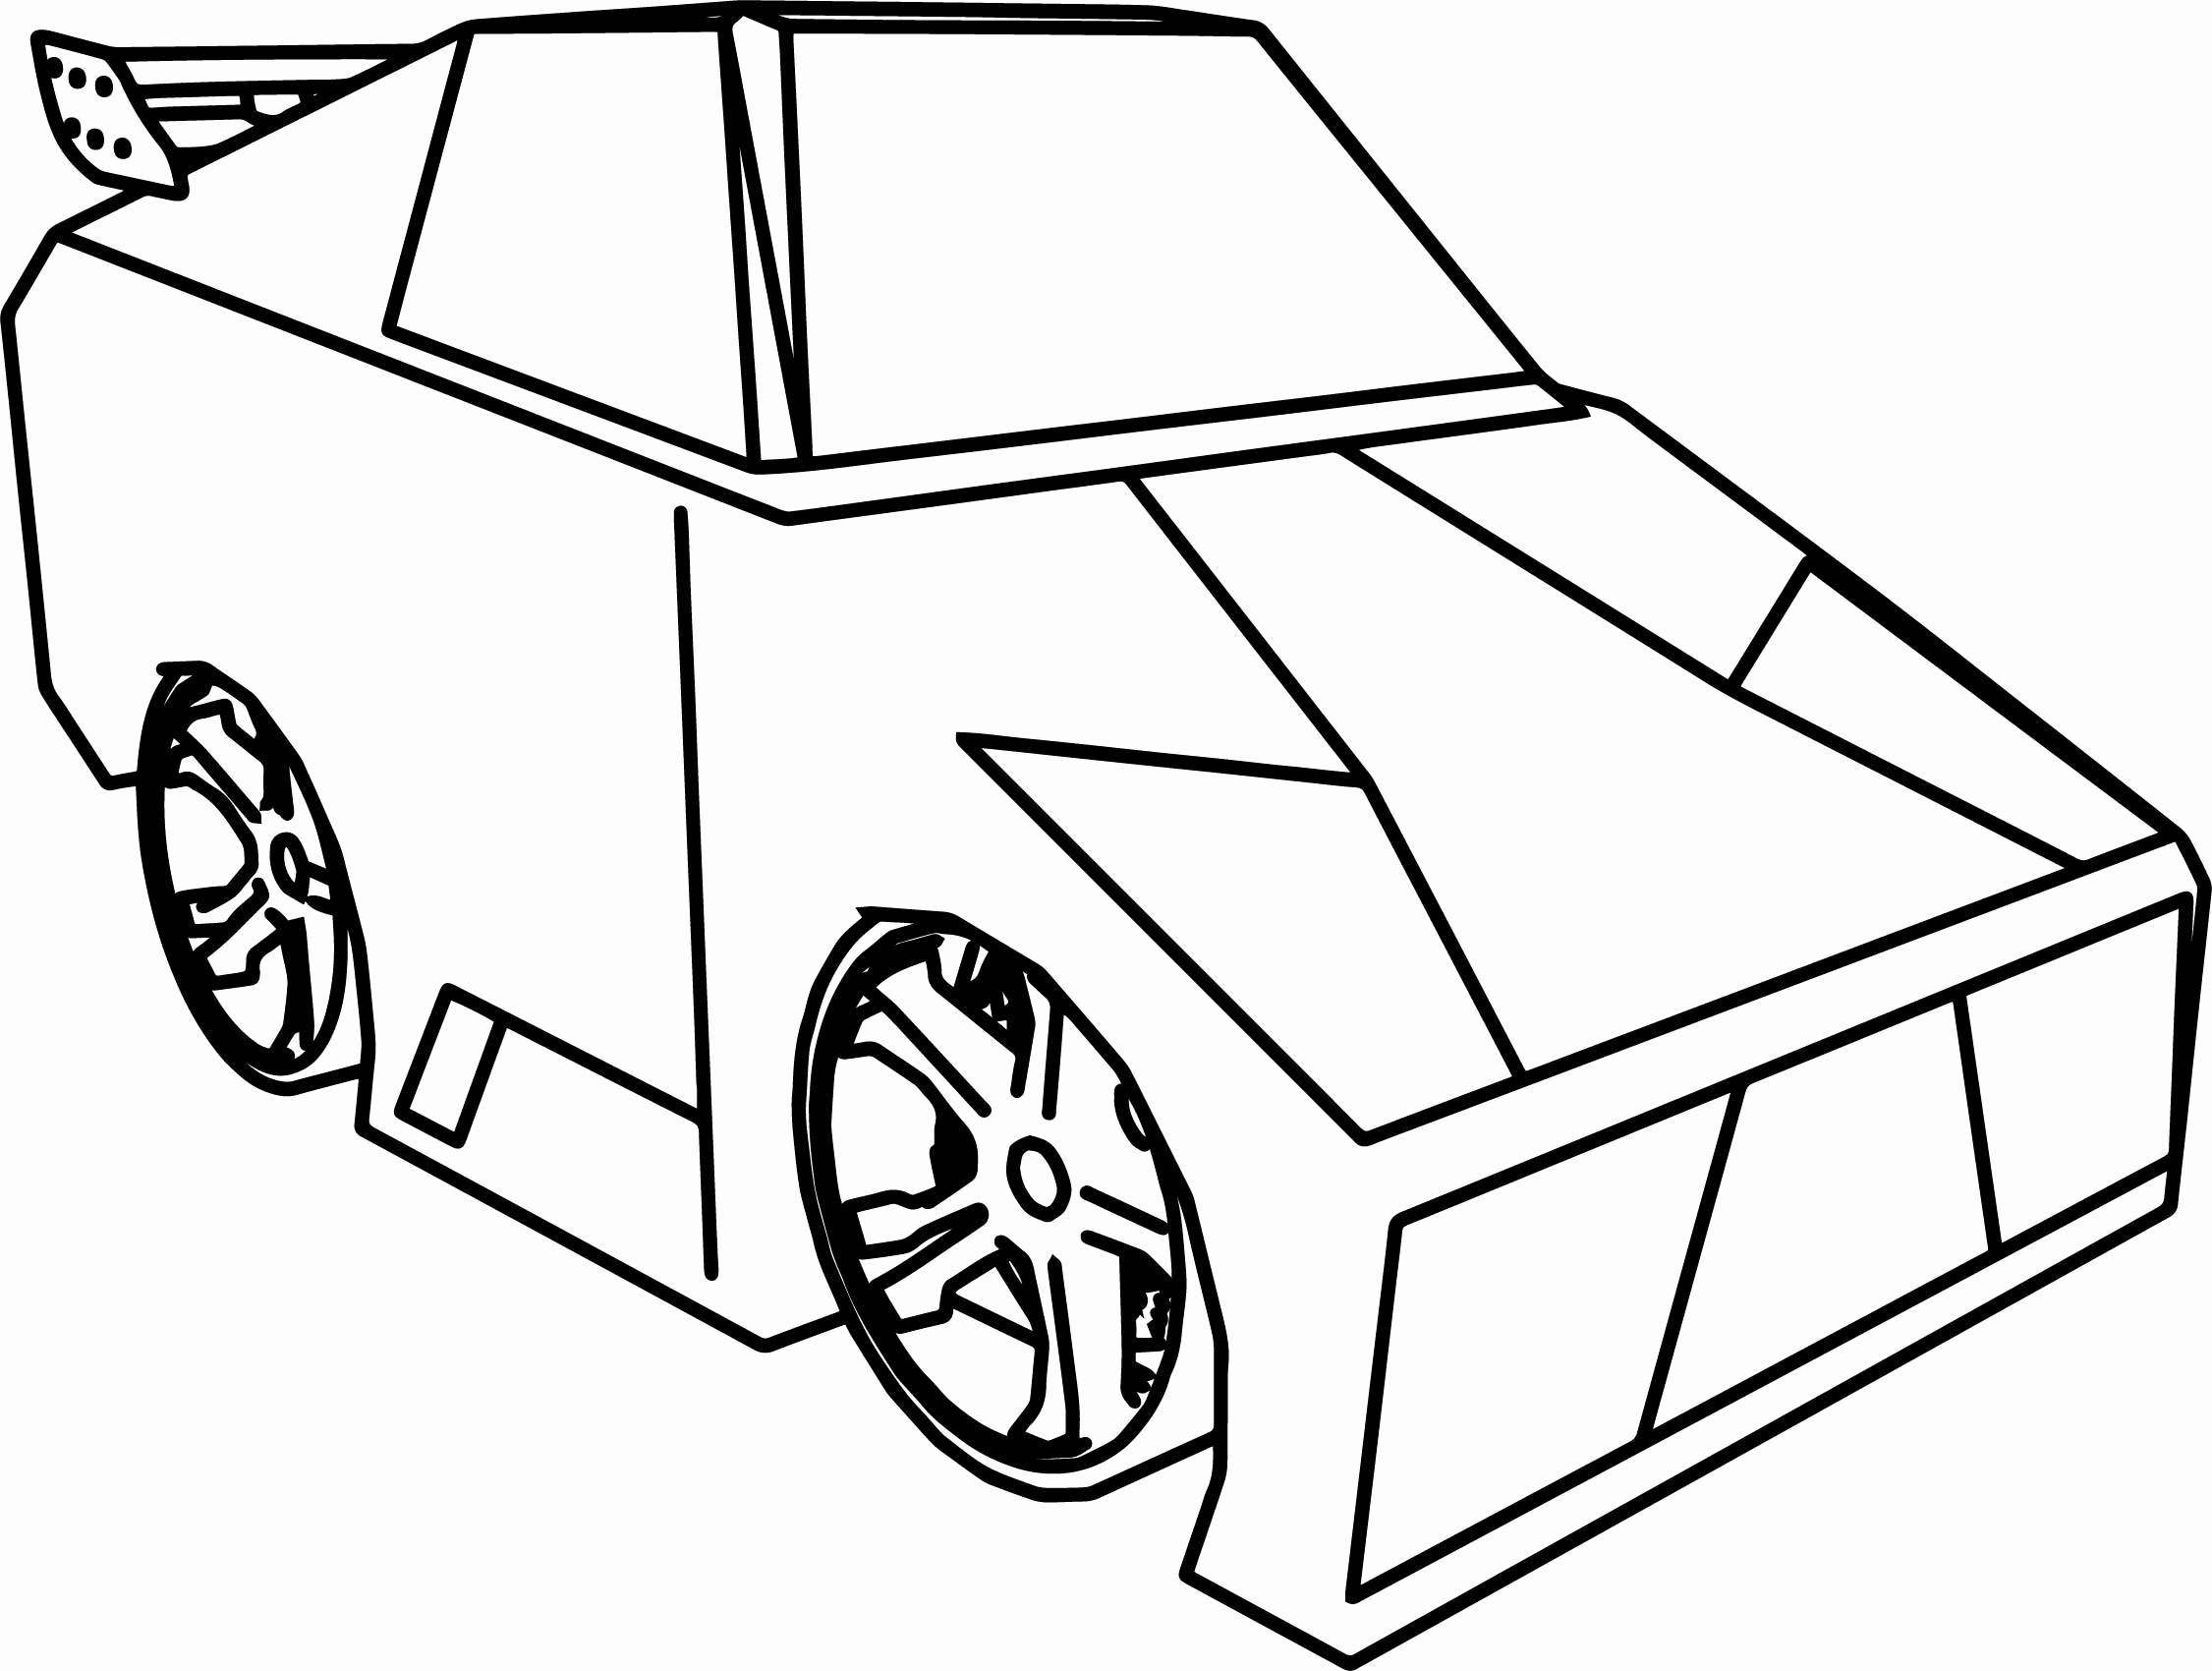 Coloring Pages Of Police Car : Lamborghini drawing pictures at getdrawings.com free for personal